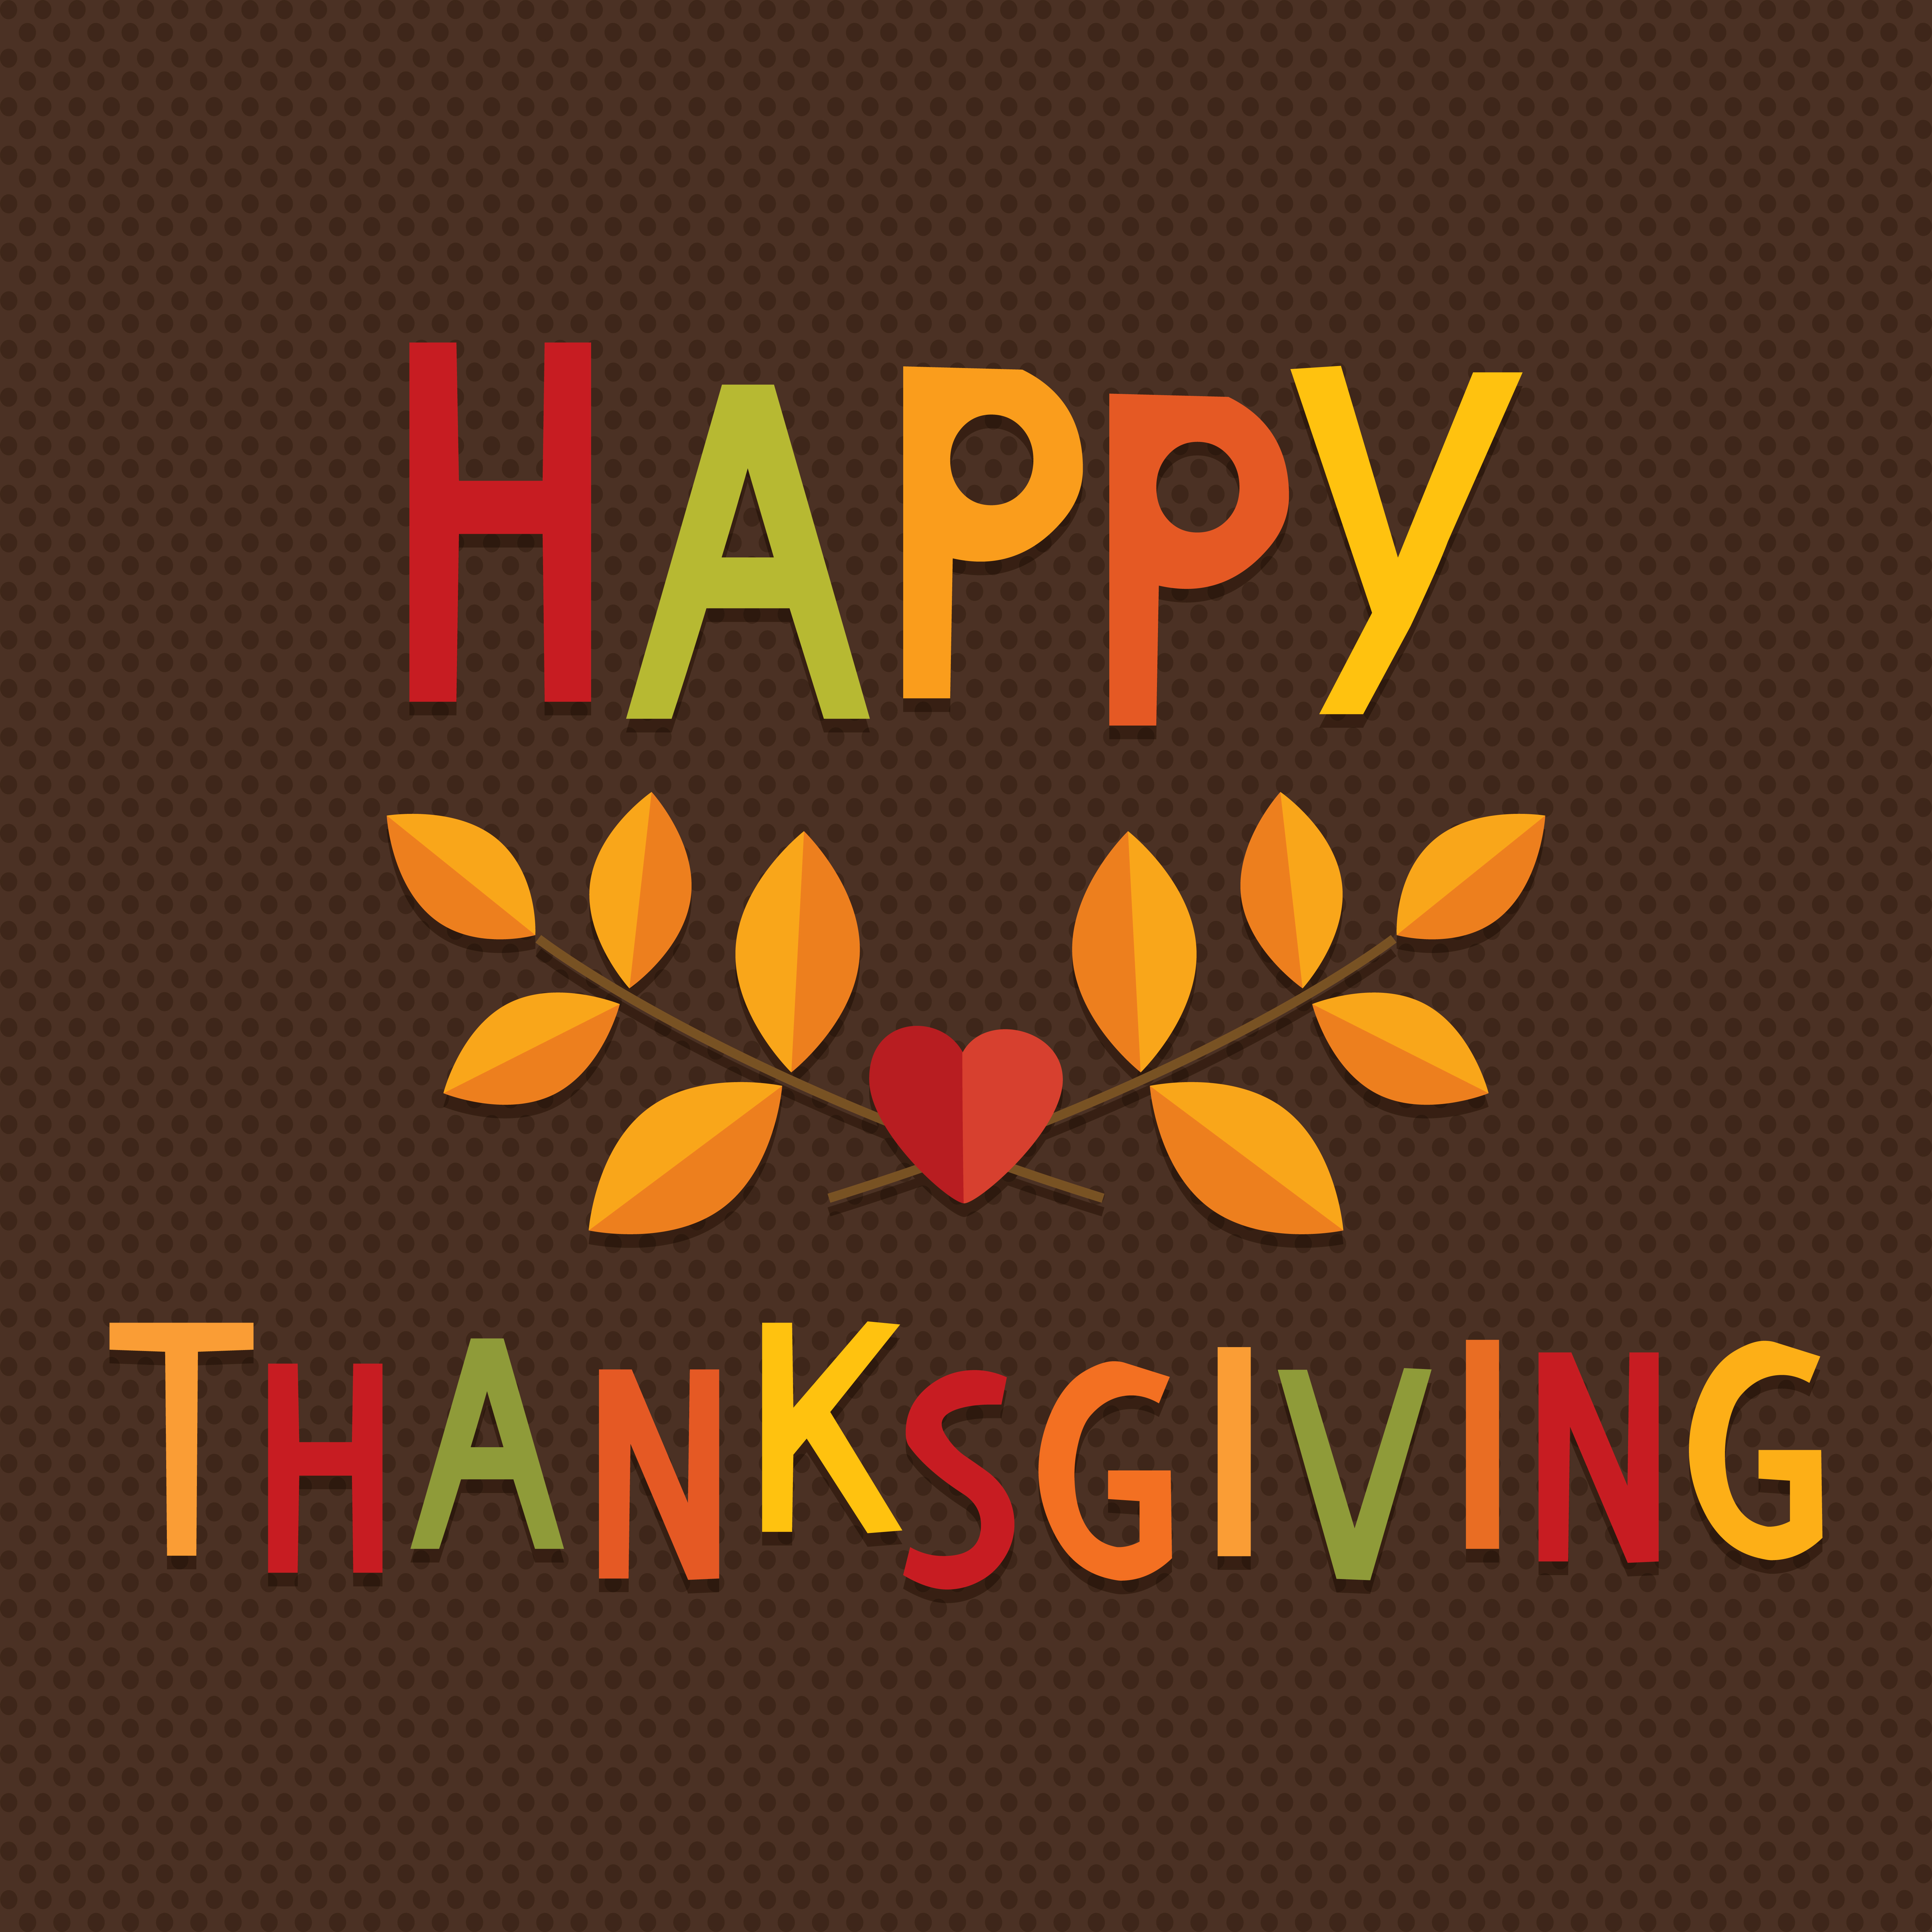 Happy Thanksgiving For Purpose Law Group